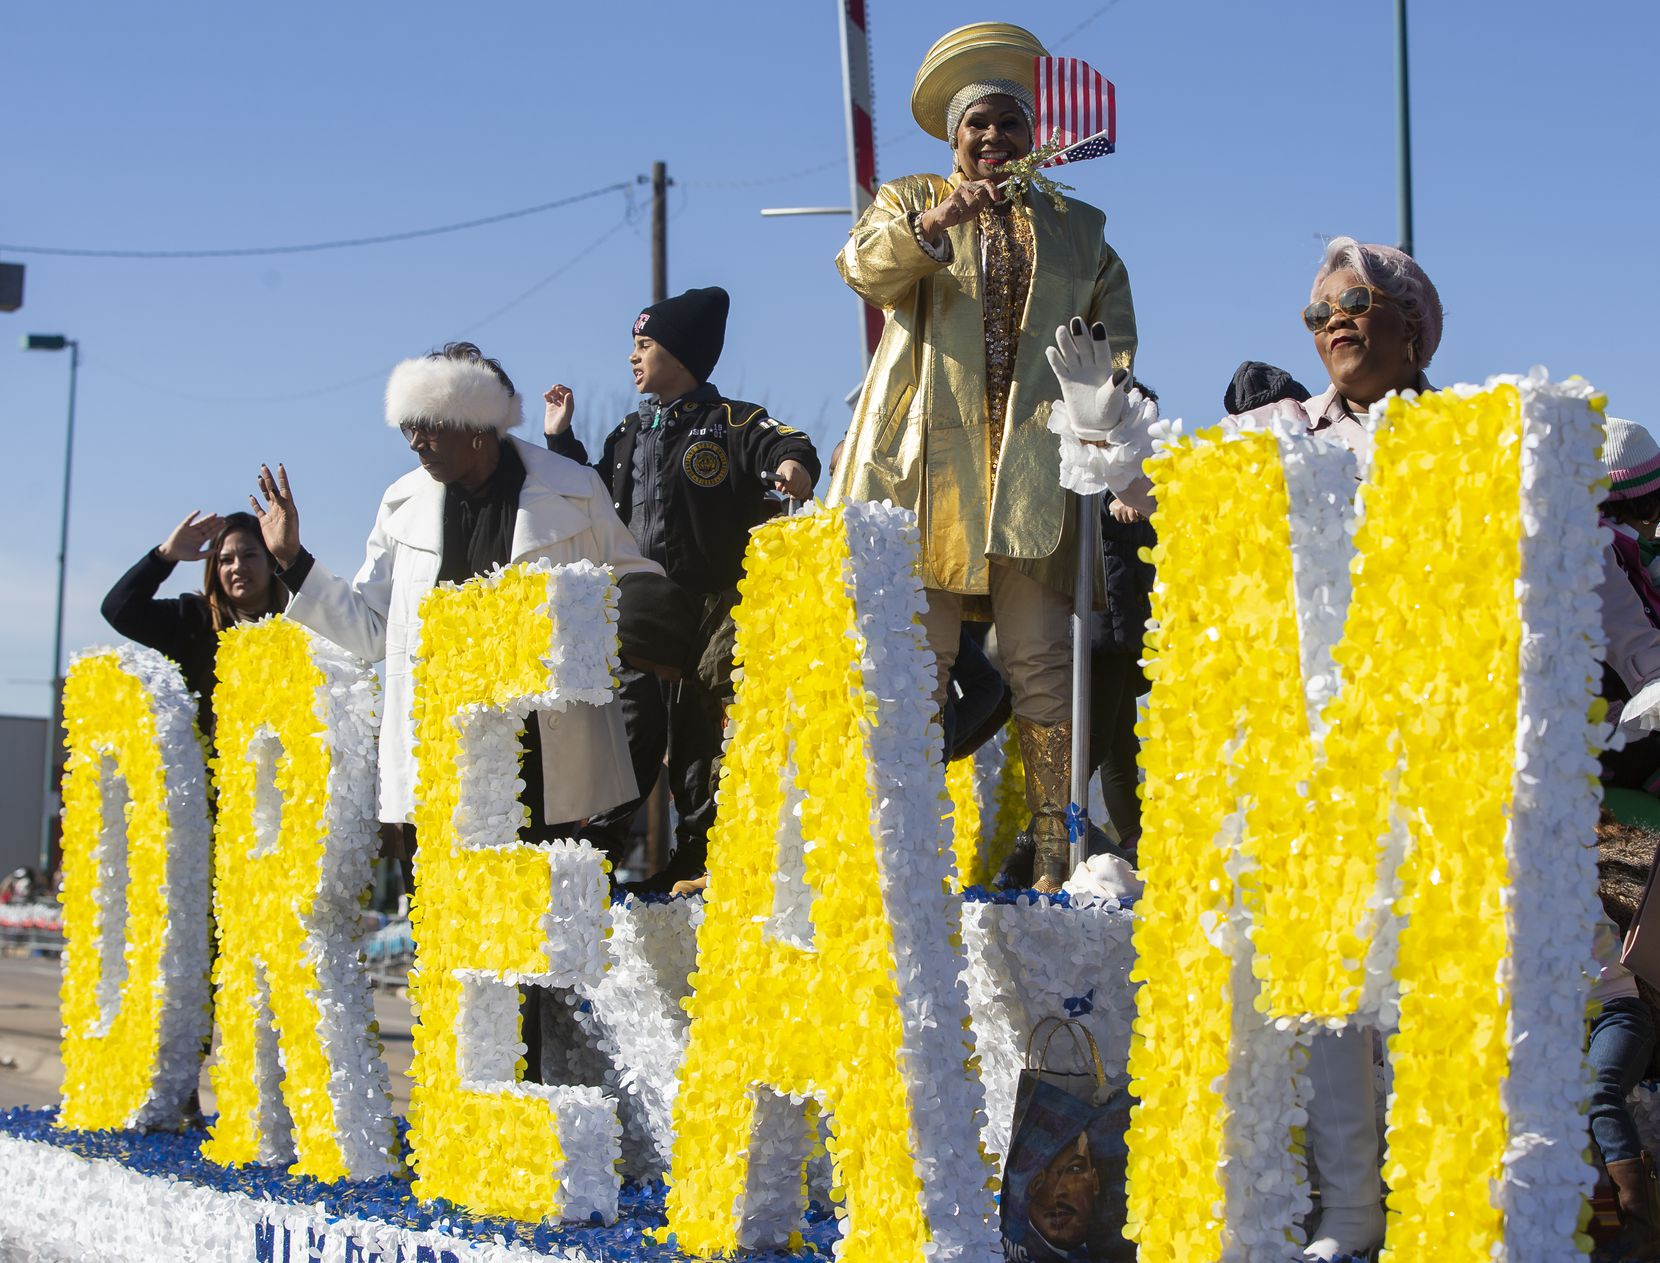 The MLK Board waves as they make their way down Martin Luther King Jr. Blvd during the 38th annual MLK Parade on Jan. 20, 2020 in Dallas.